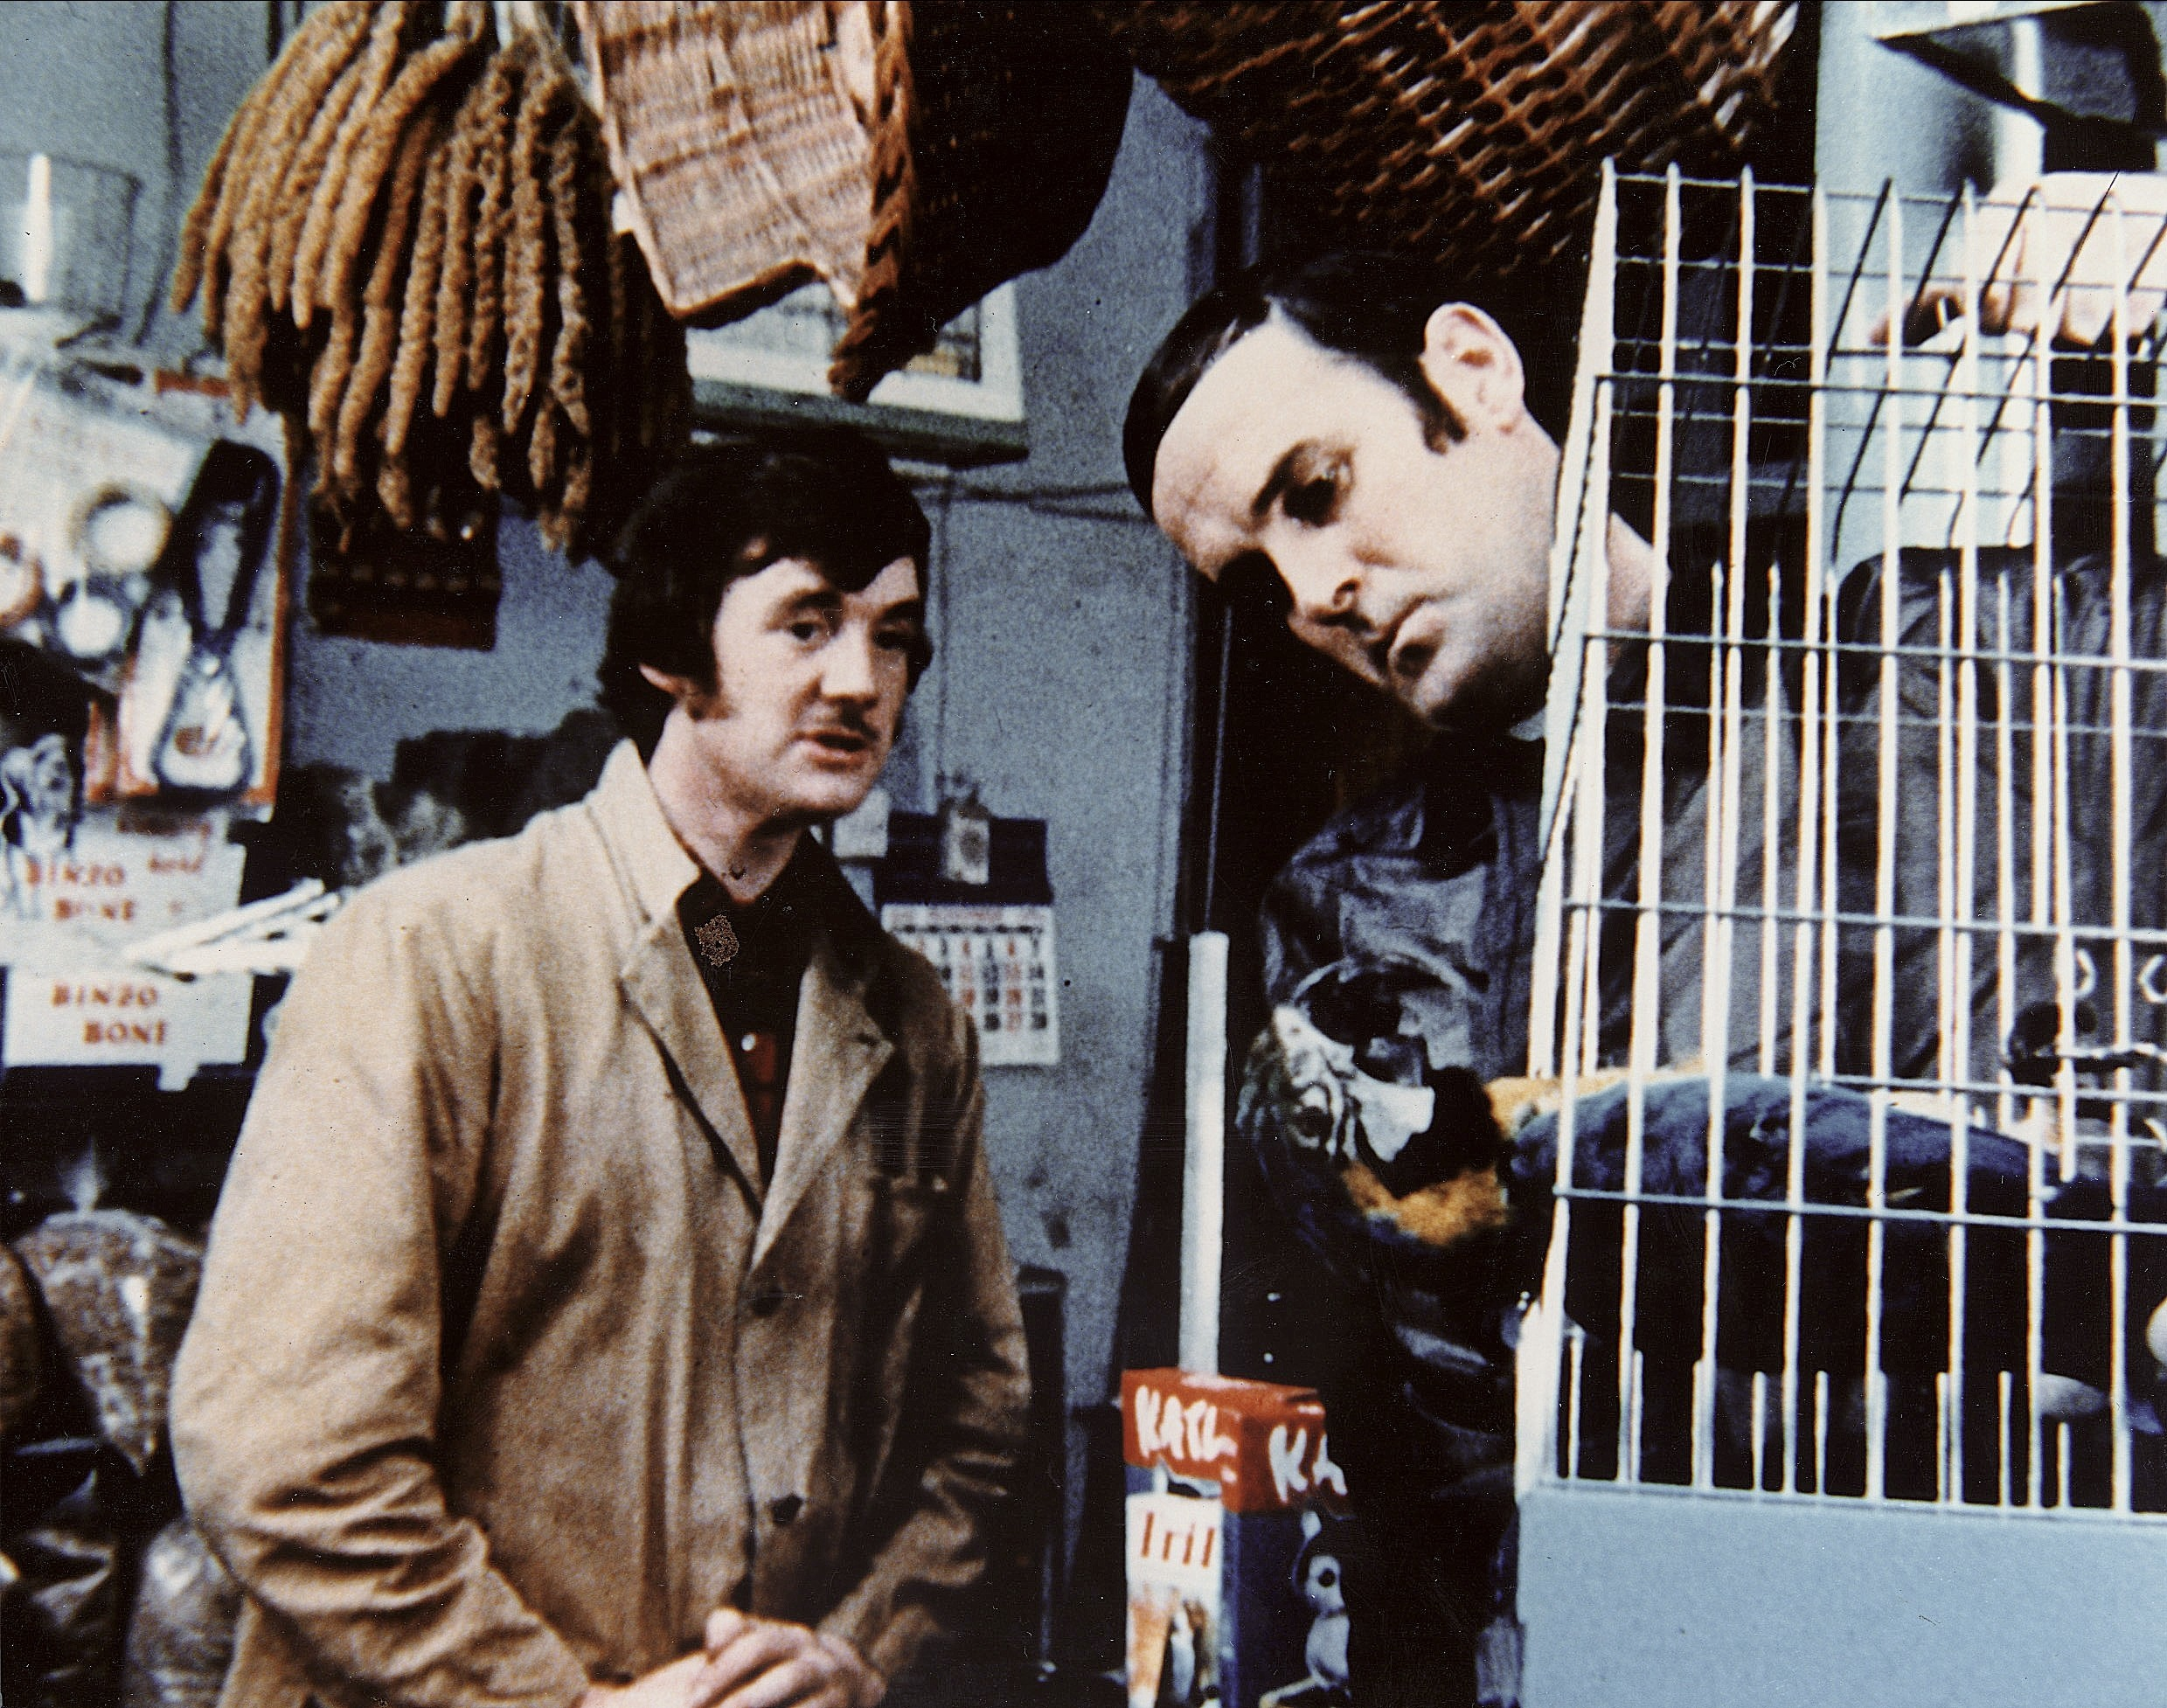 Michael Palin in the famous 1971 'parrot' sketch of Monty Python's Flying Circus with John Cleese